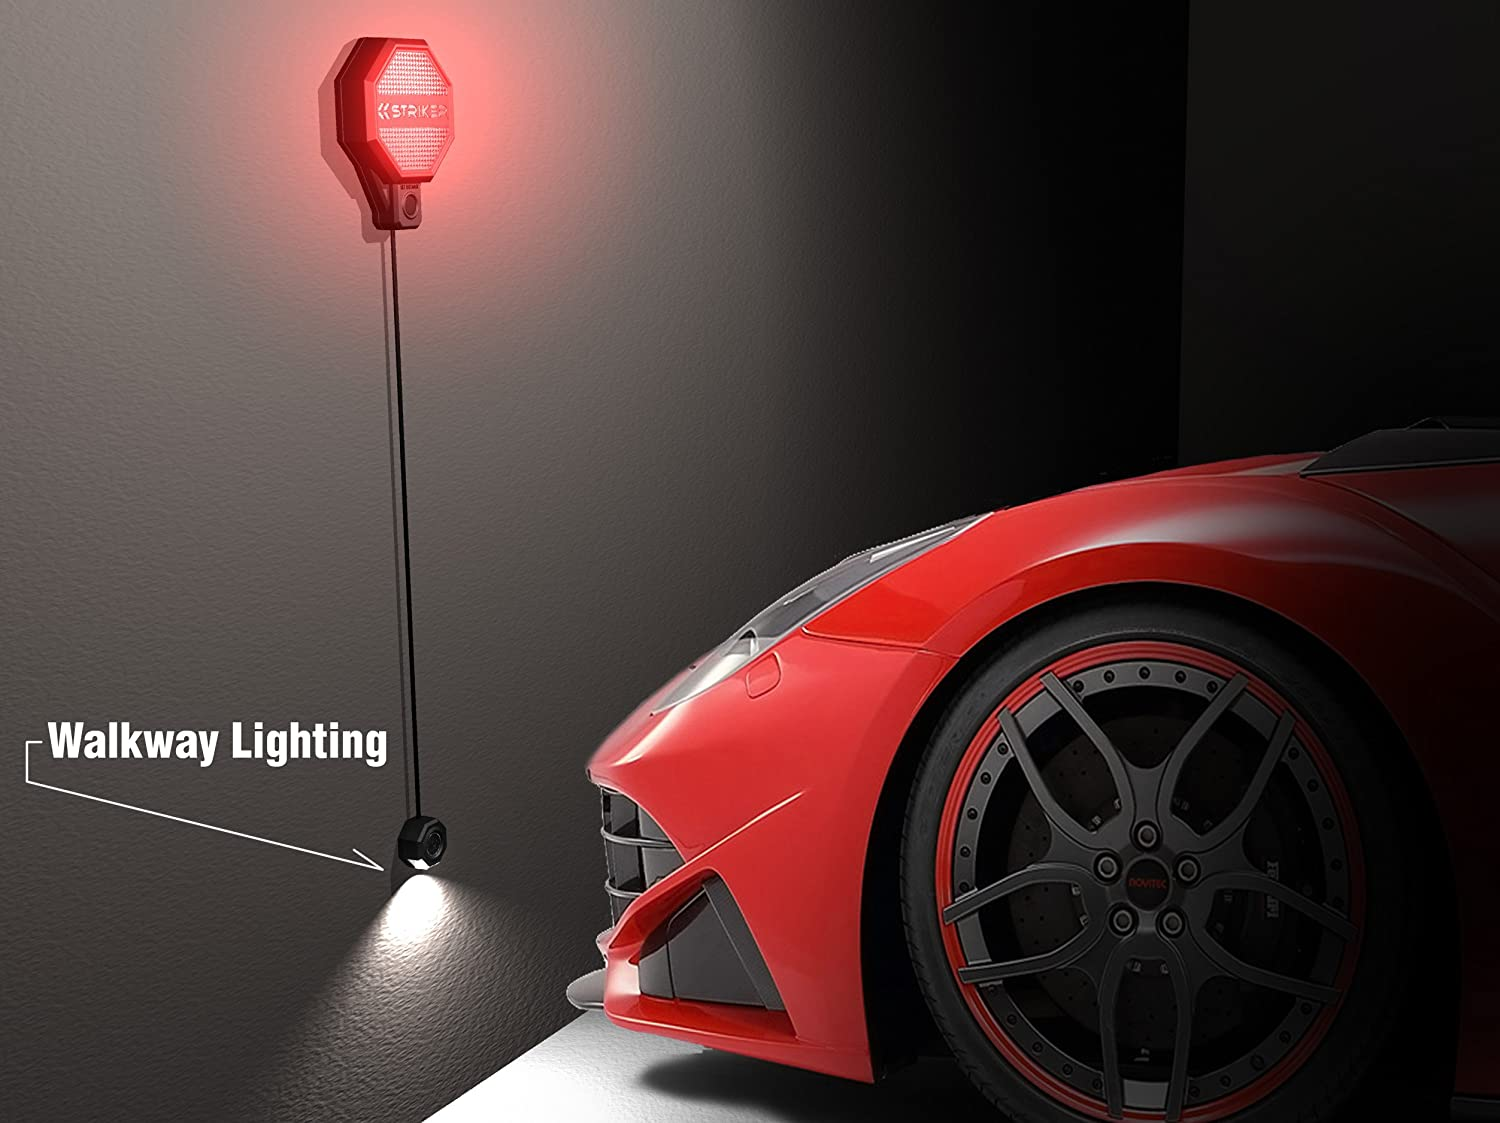 The 5 Best Parking Gadgets For Your Garage: Reviews & Buying Guide 8